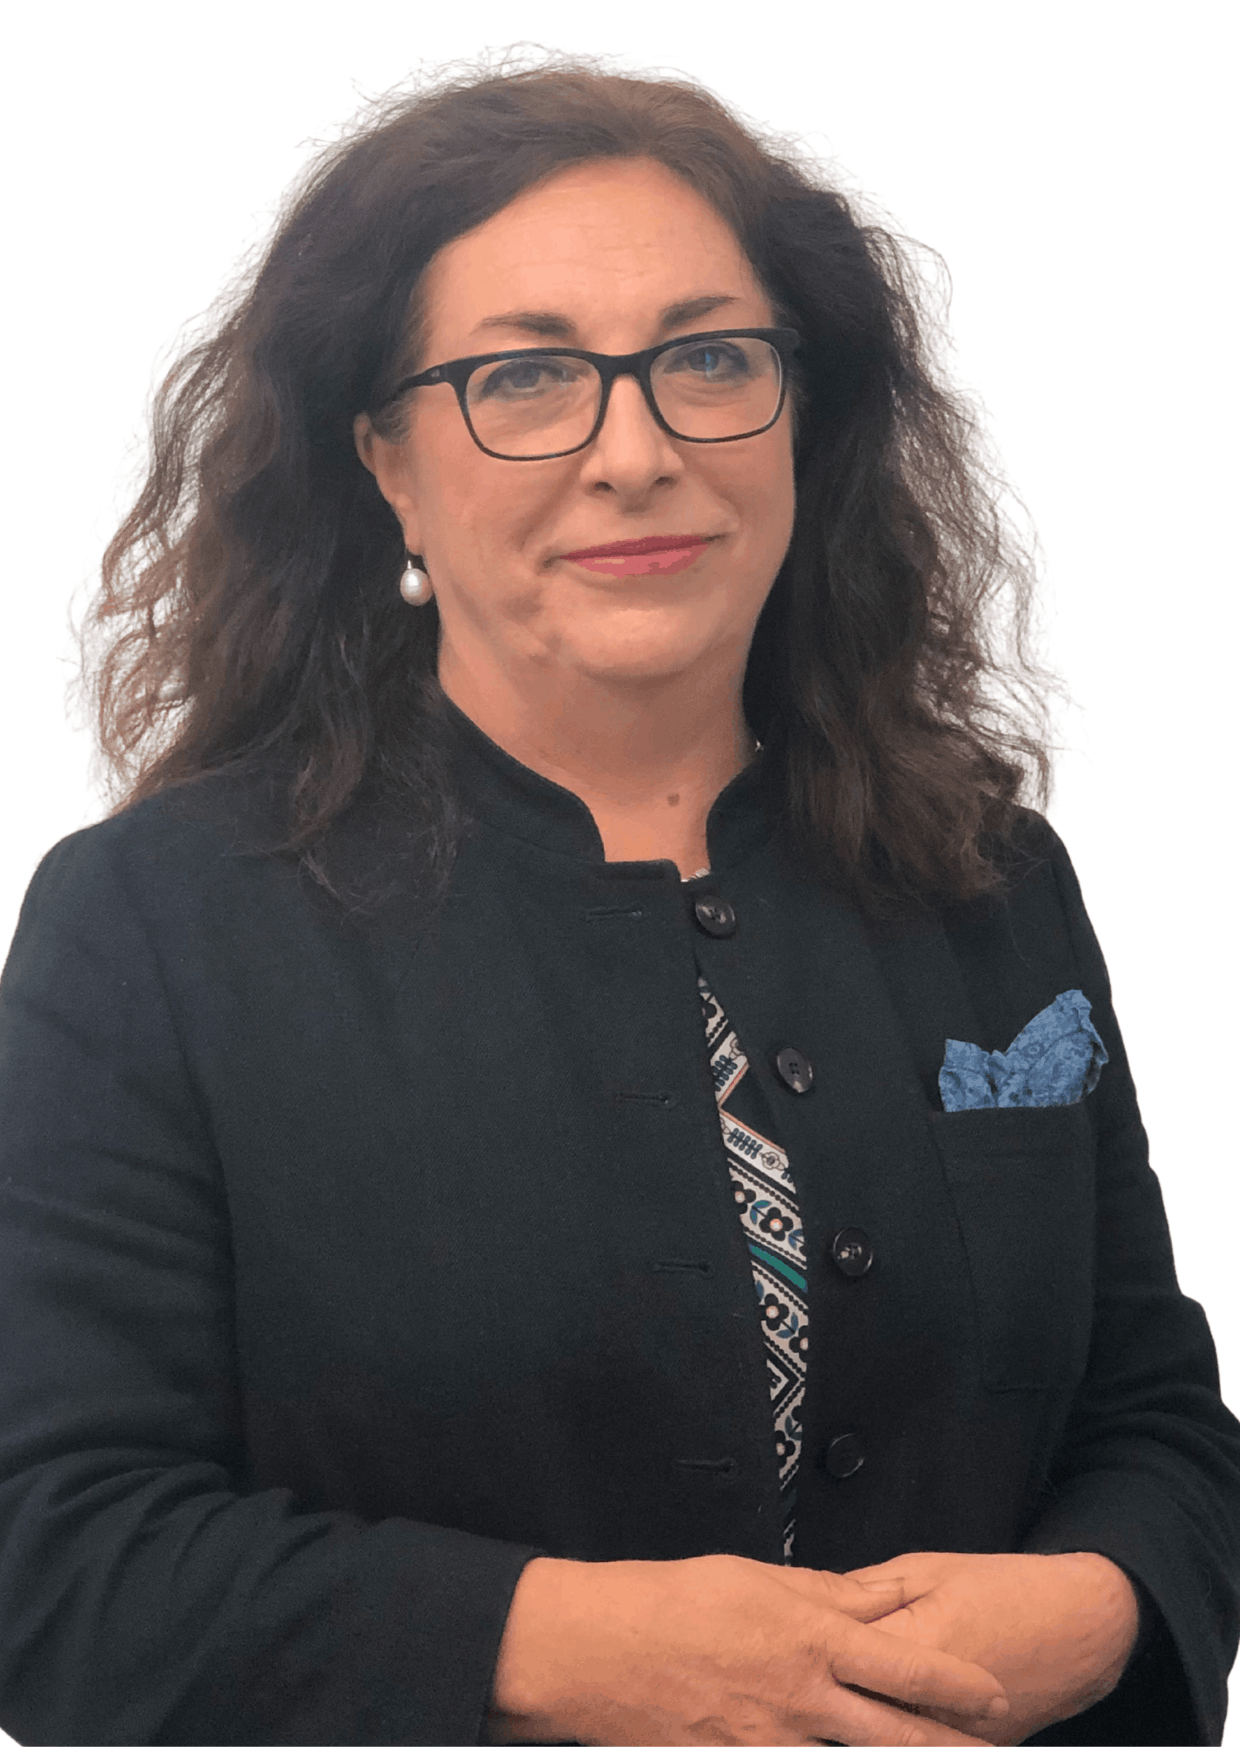 Lisa Gough - Our People